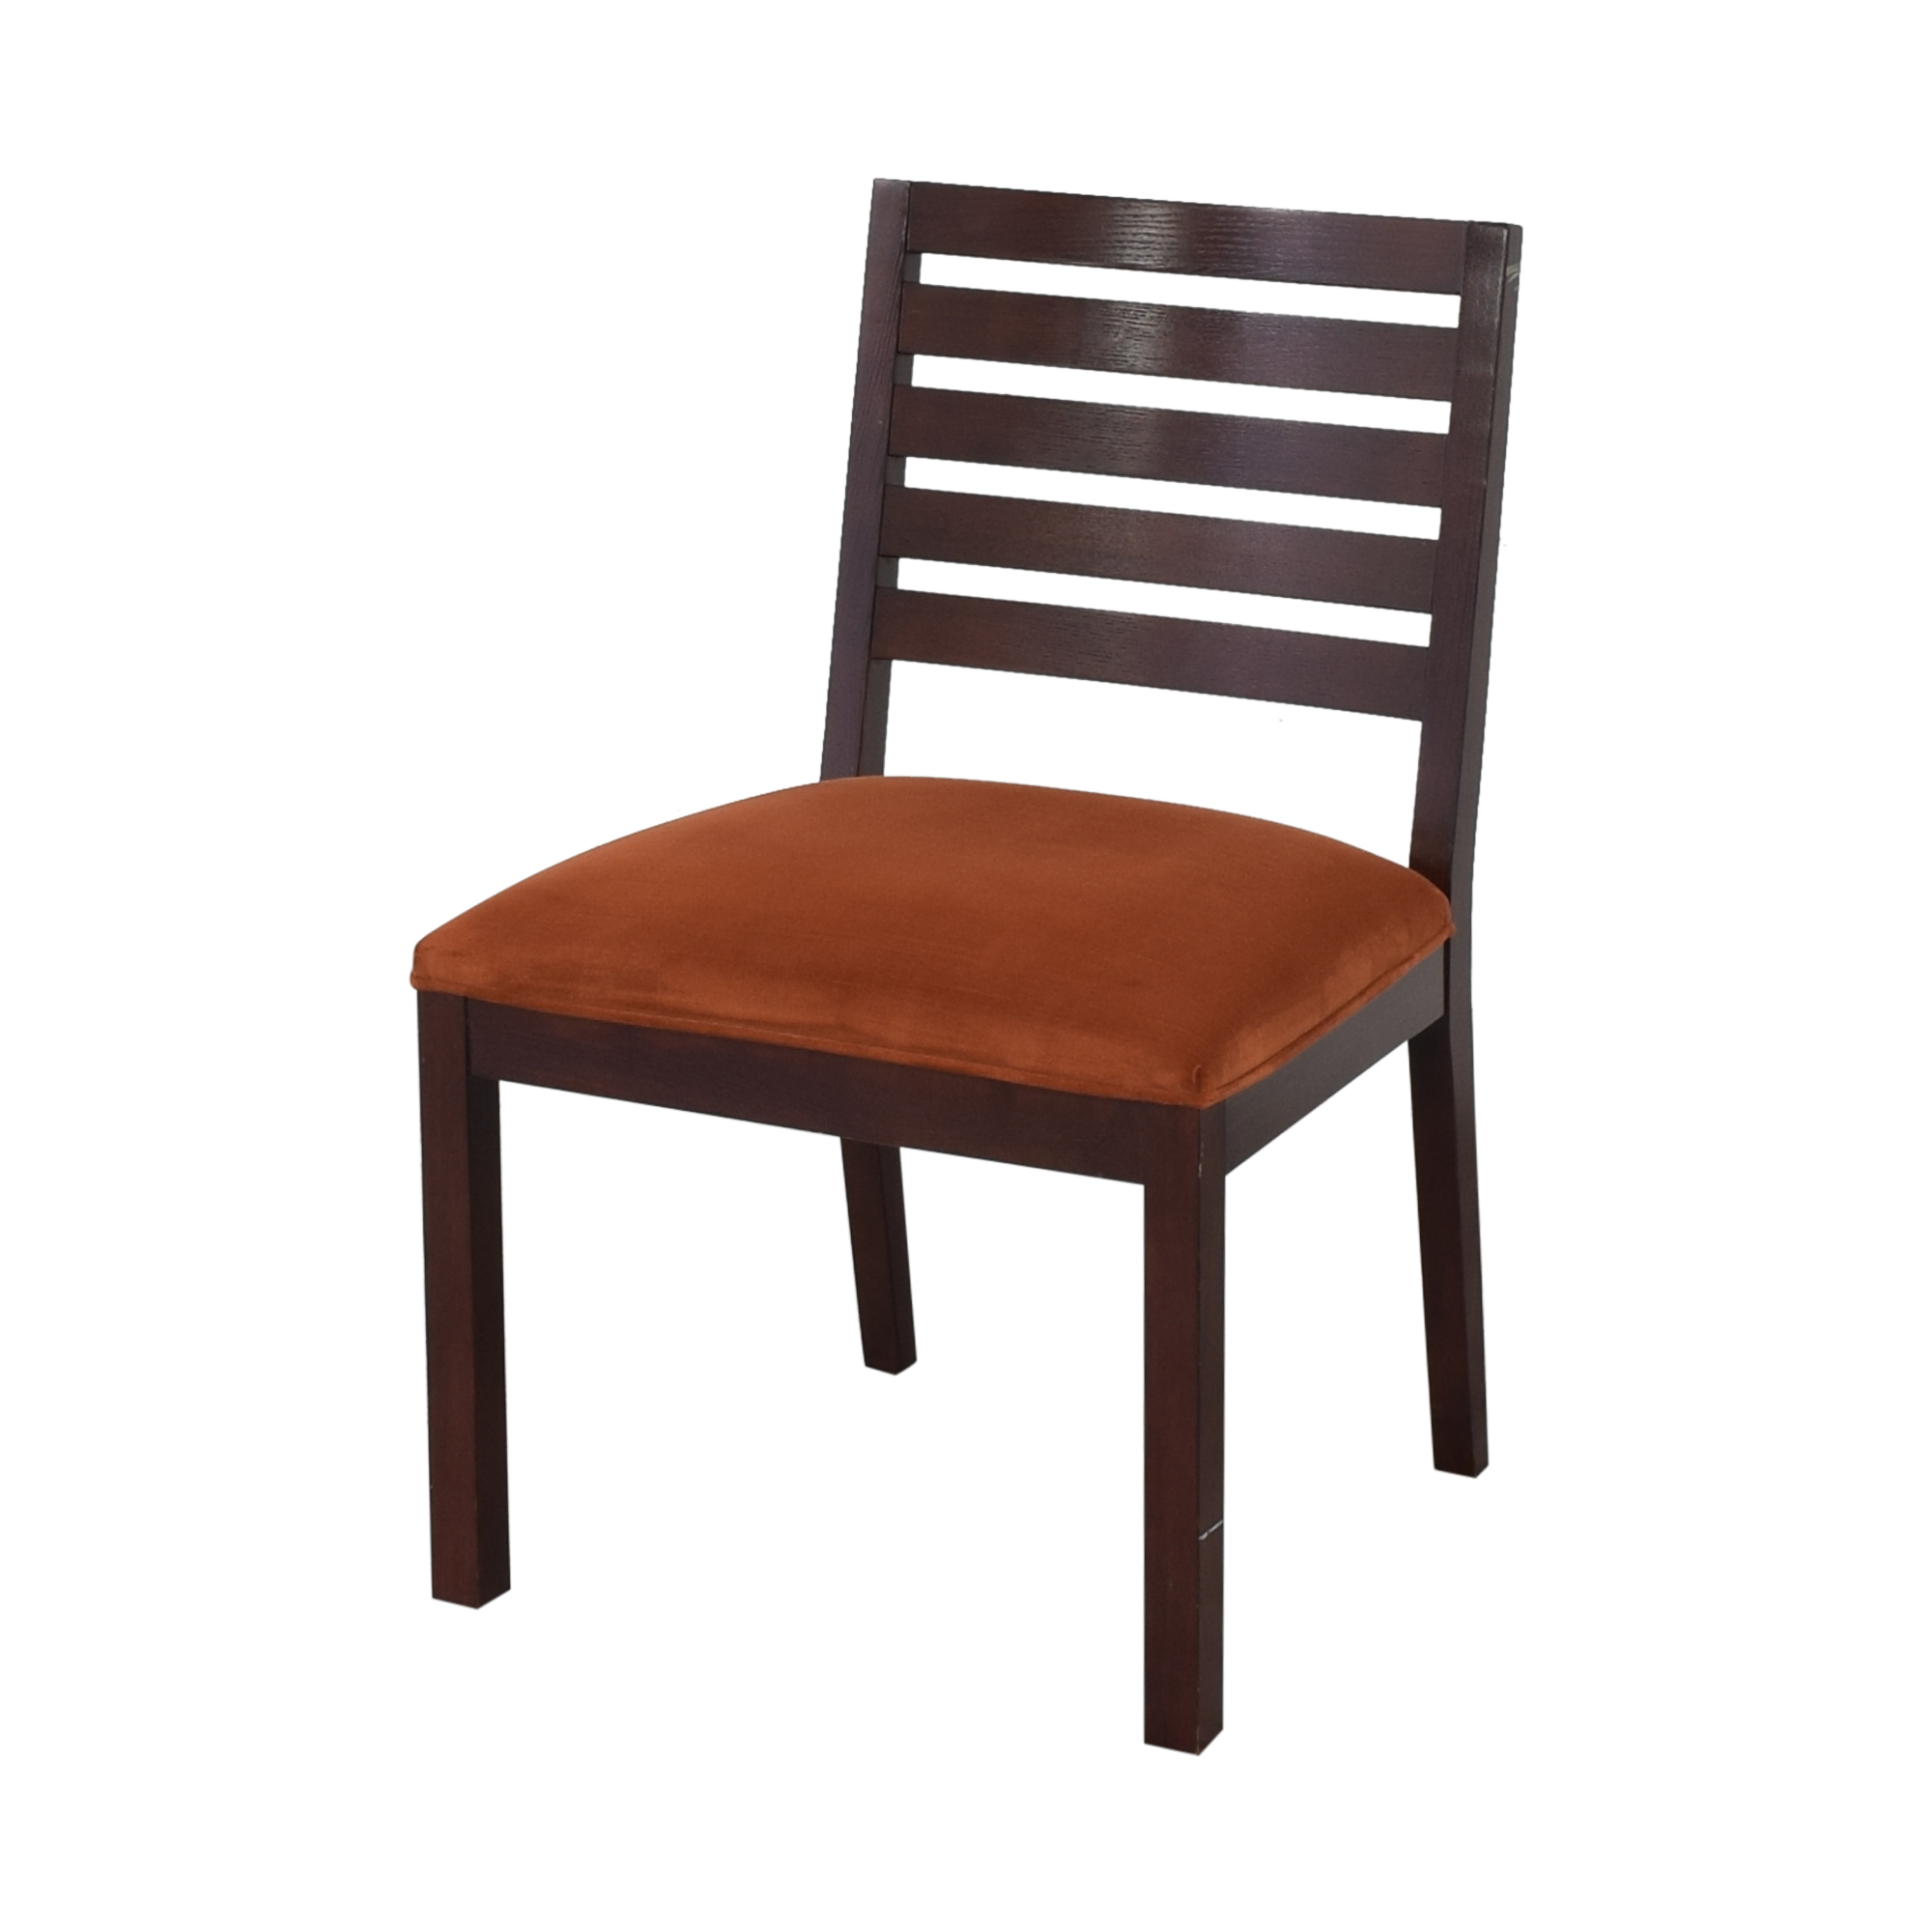 Ethan Allen Ethan Allen Upholstered Dining Chairs nyc